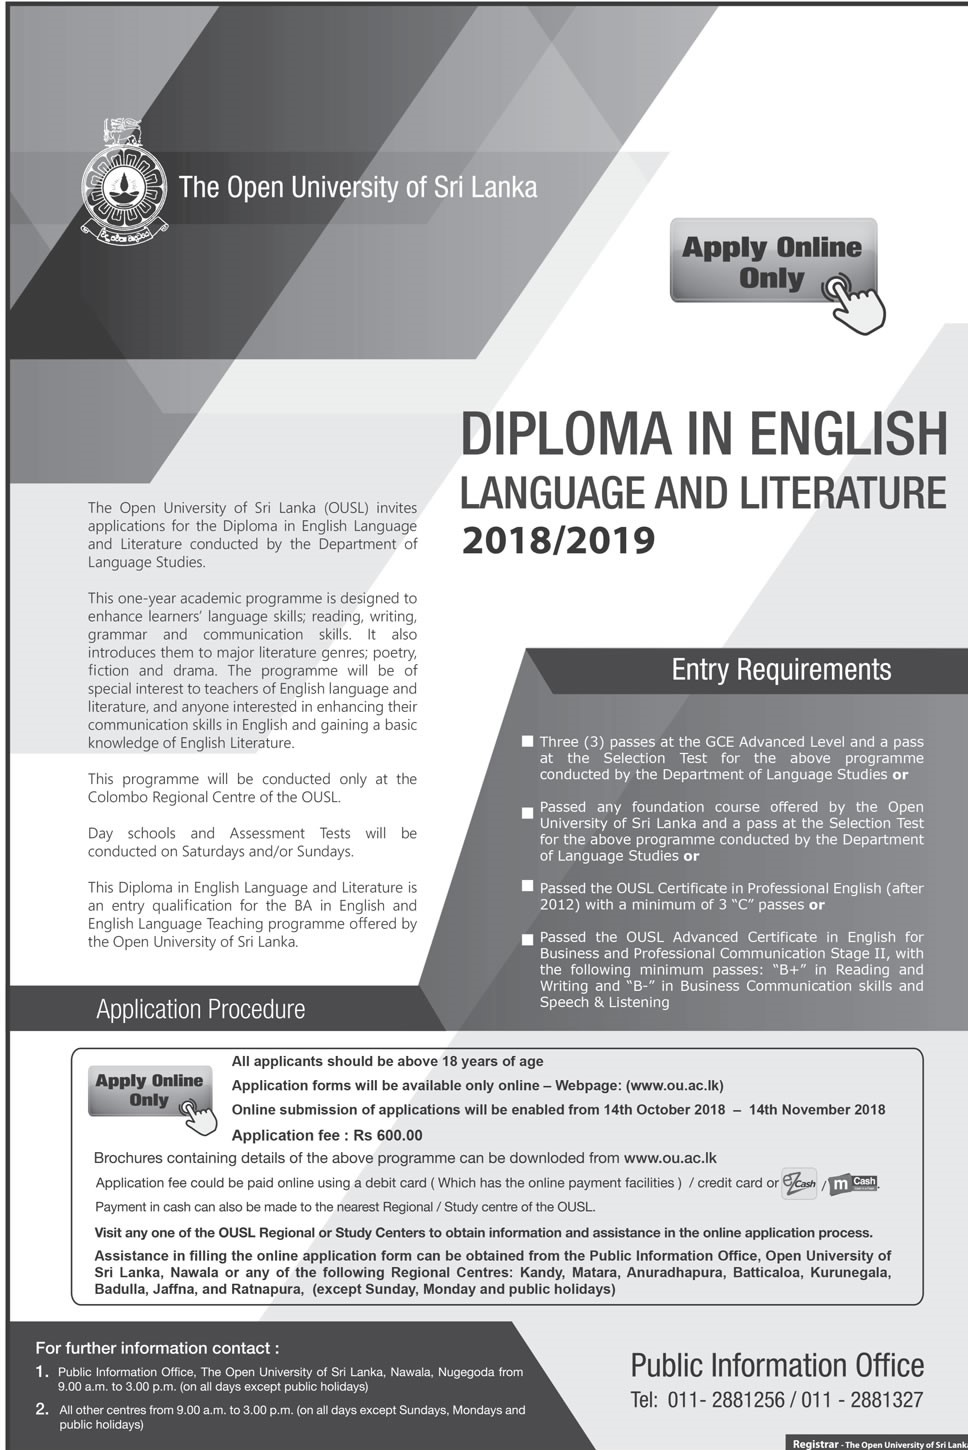 Diploma in English Language and Literature